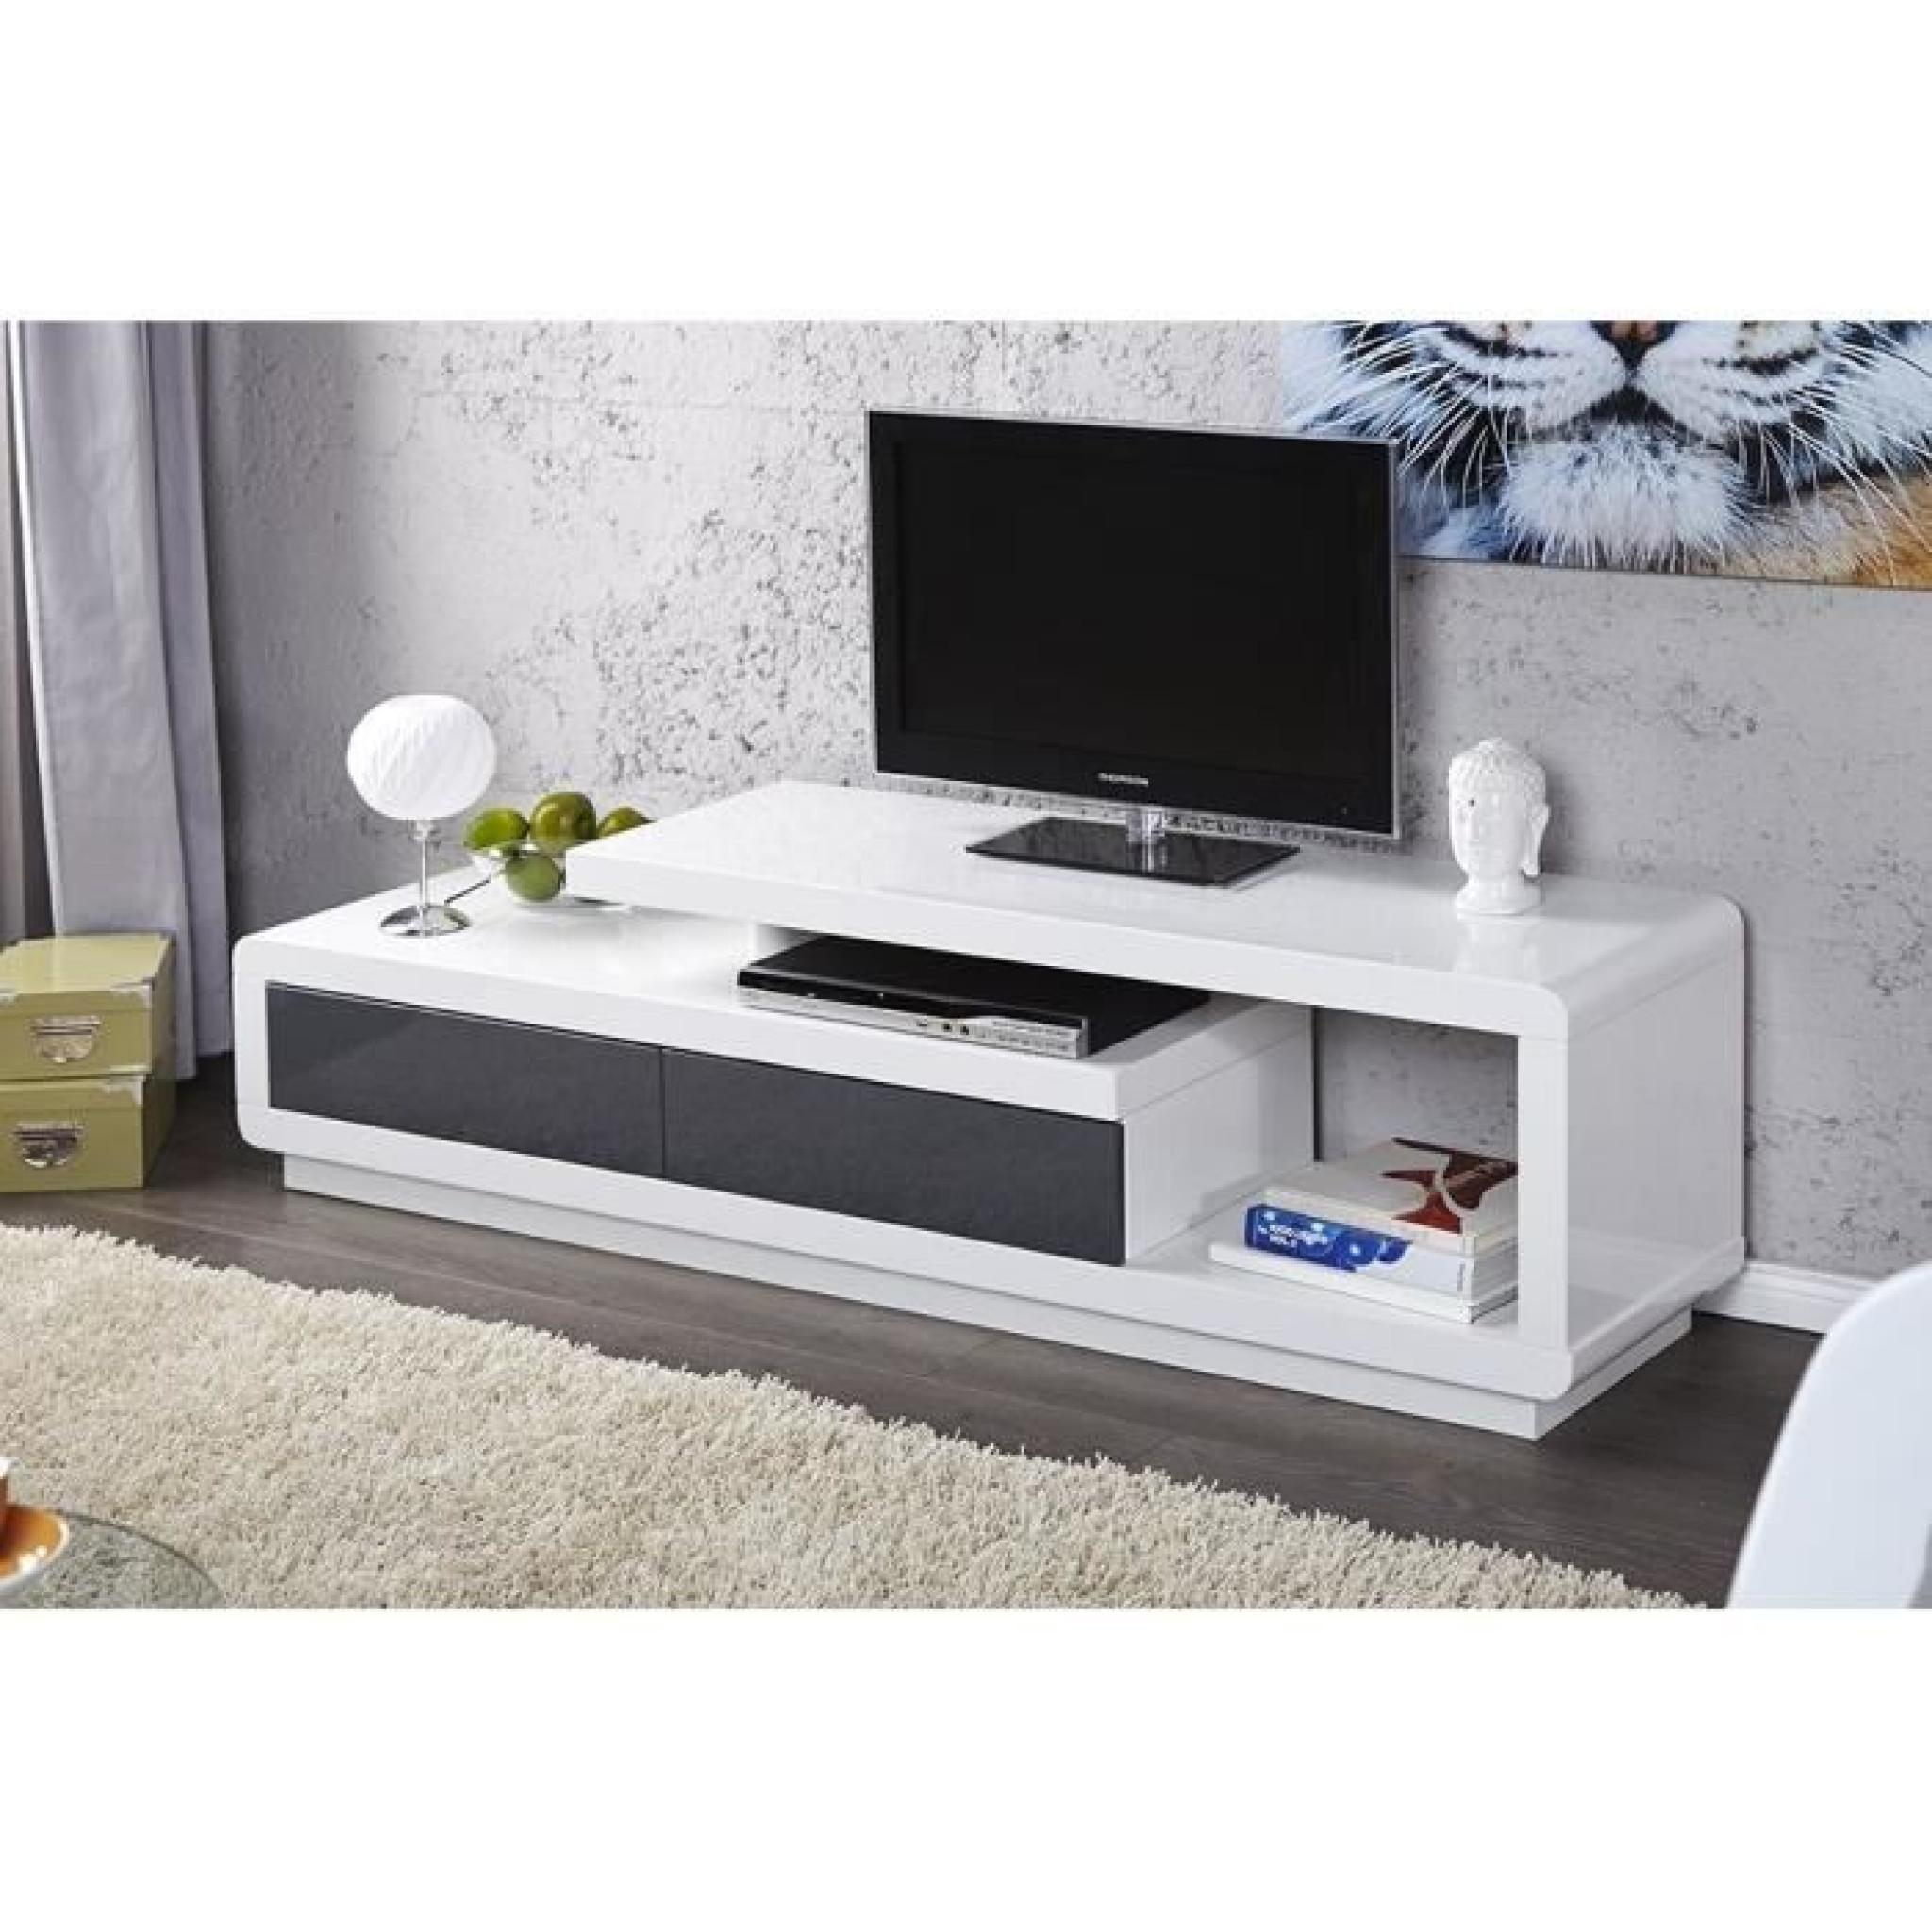 meuble tv design blanc laque pas cher id es de d coration int rieure french decor On meuble tv design pas cher